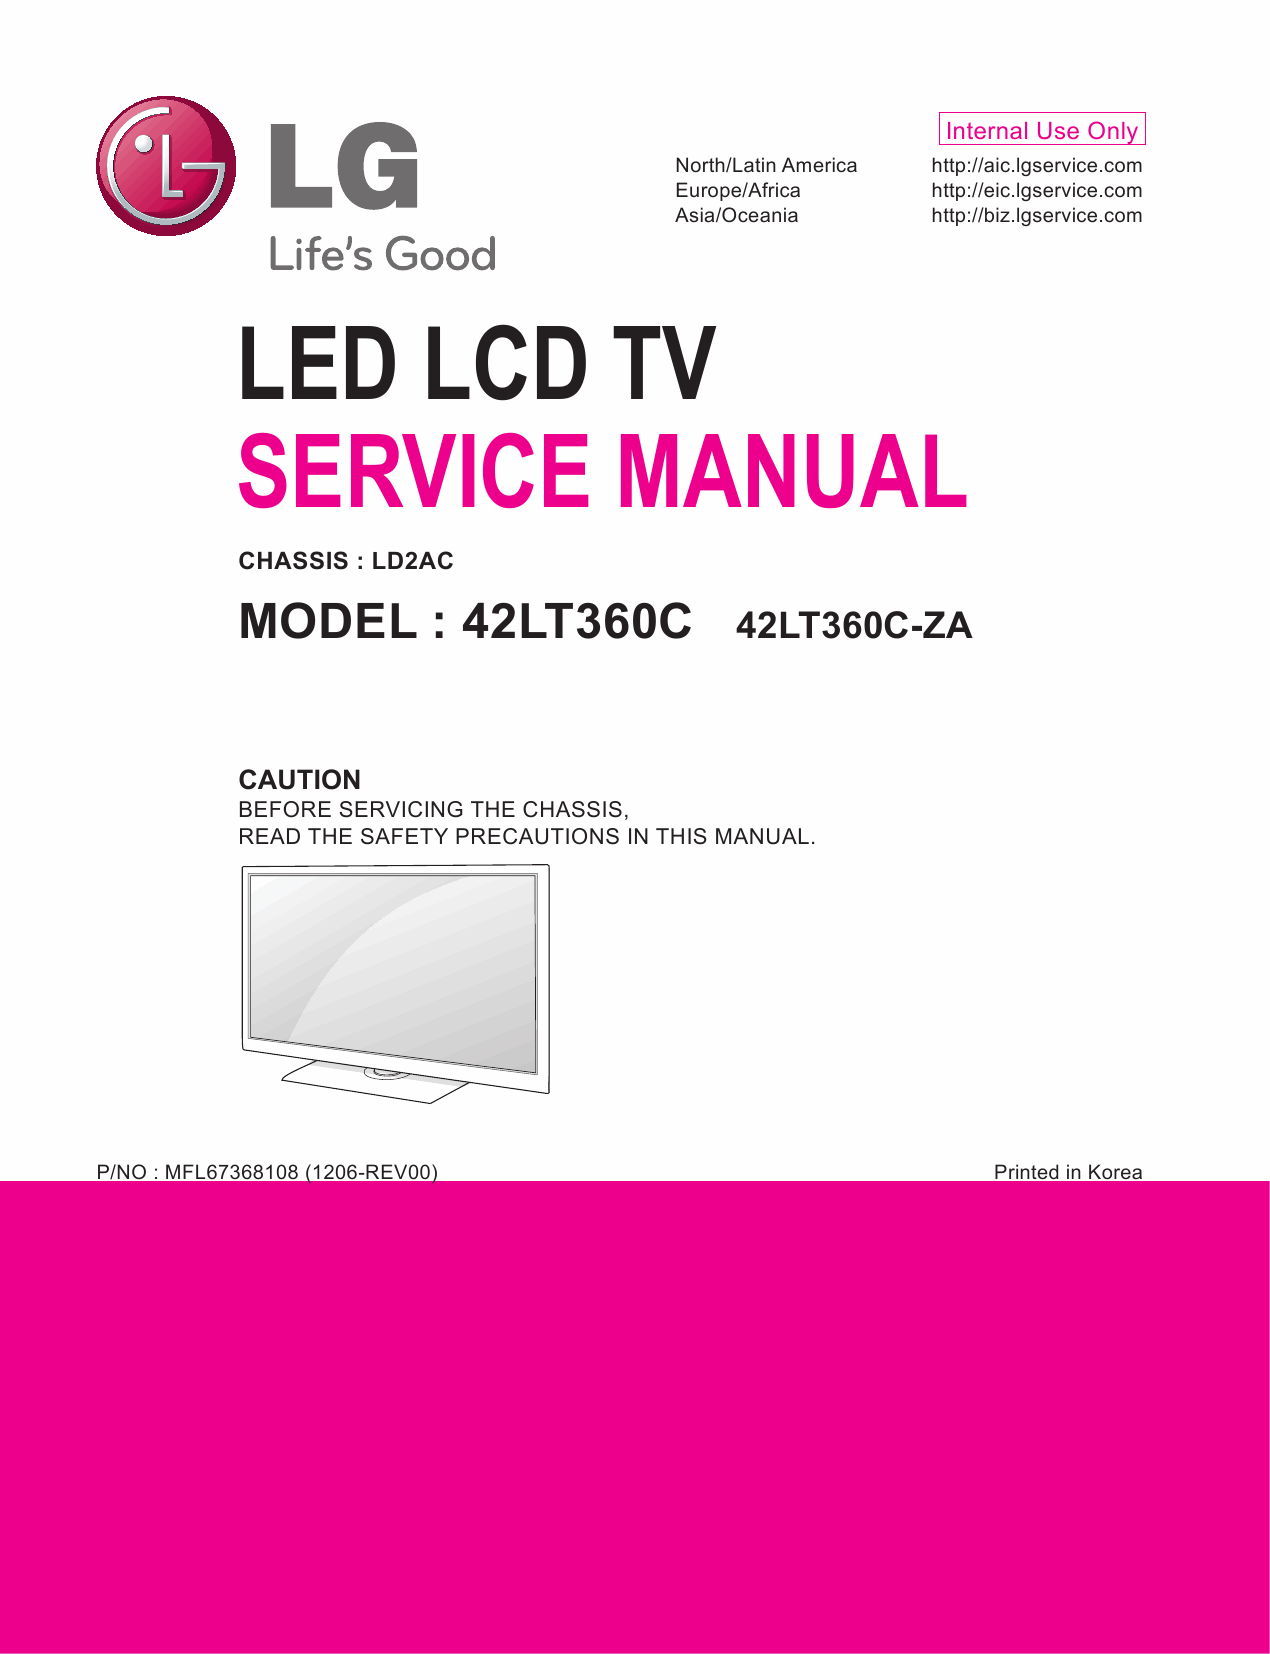 LG_LED_TV_42LT360C_Service_Manual_2012_Qmanual.com-1